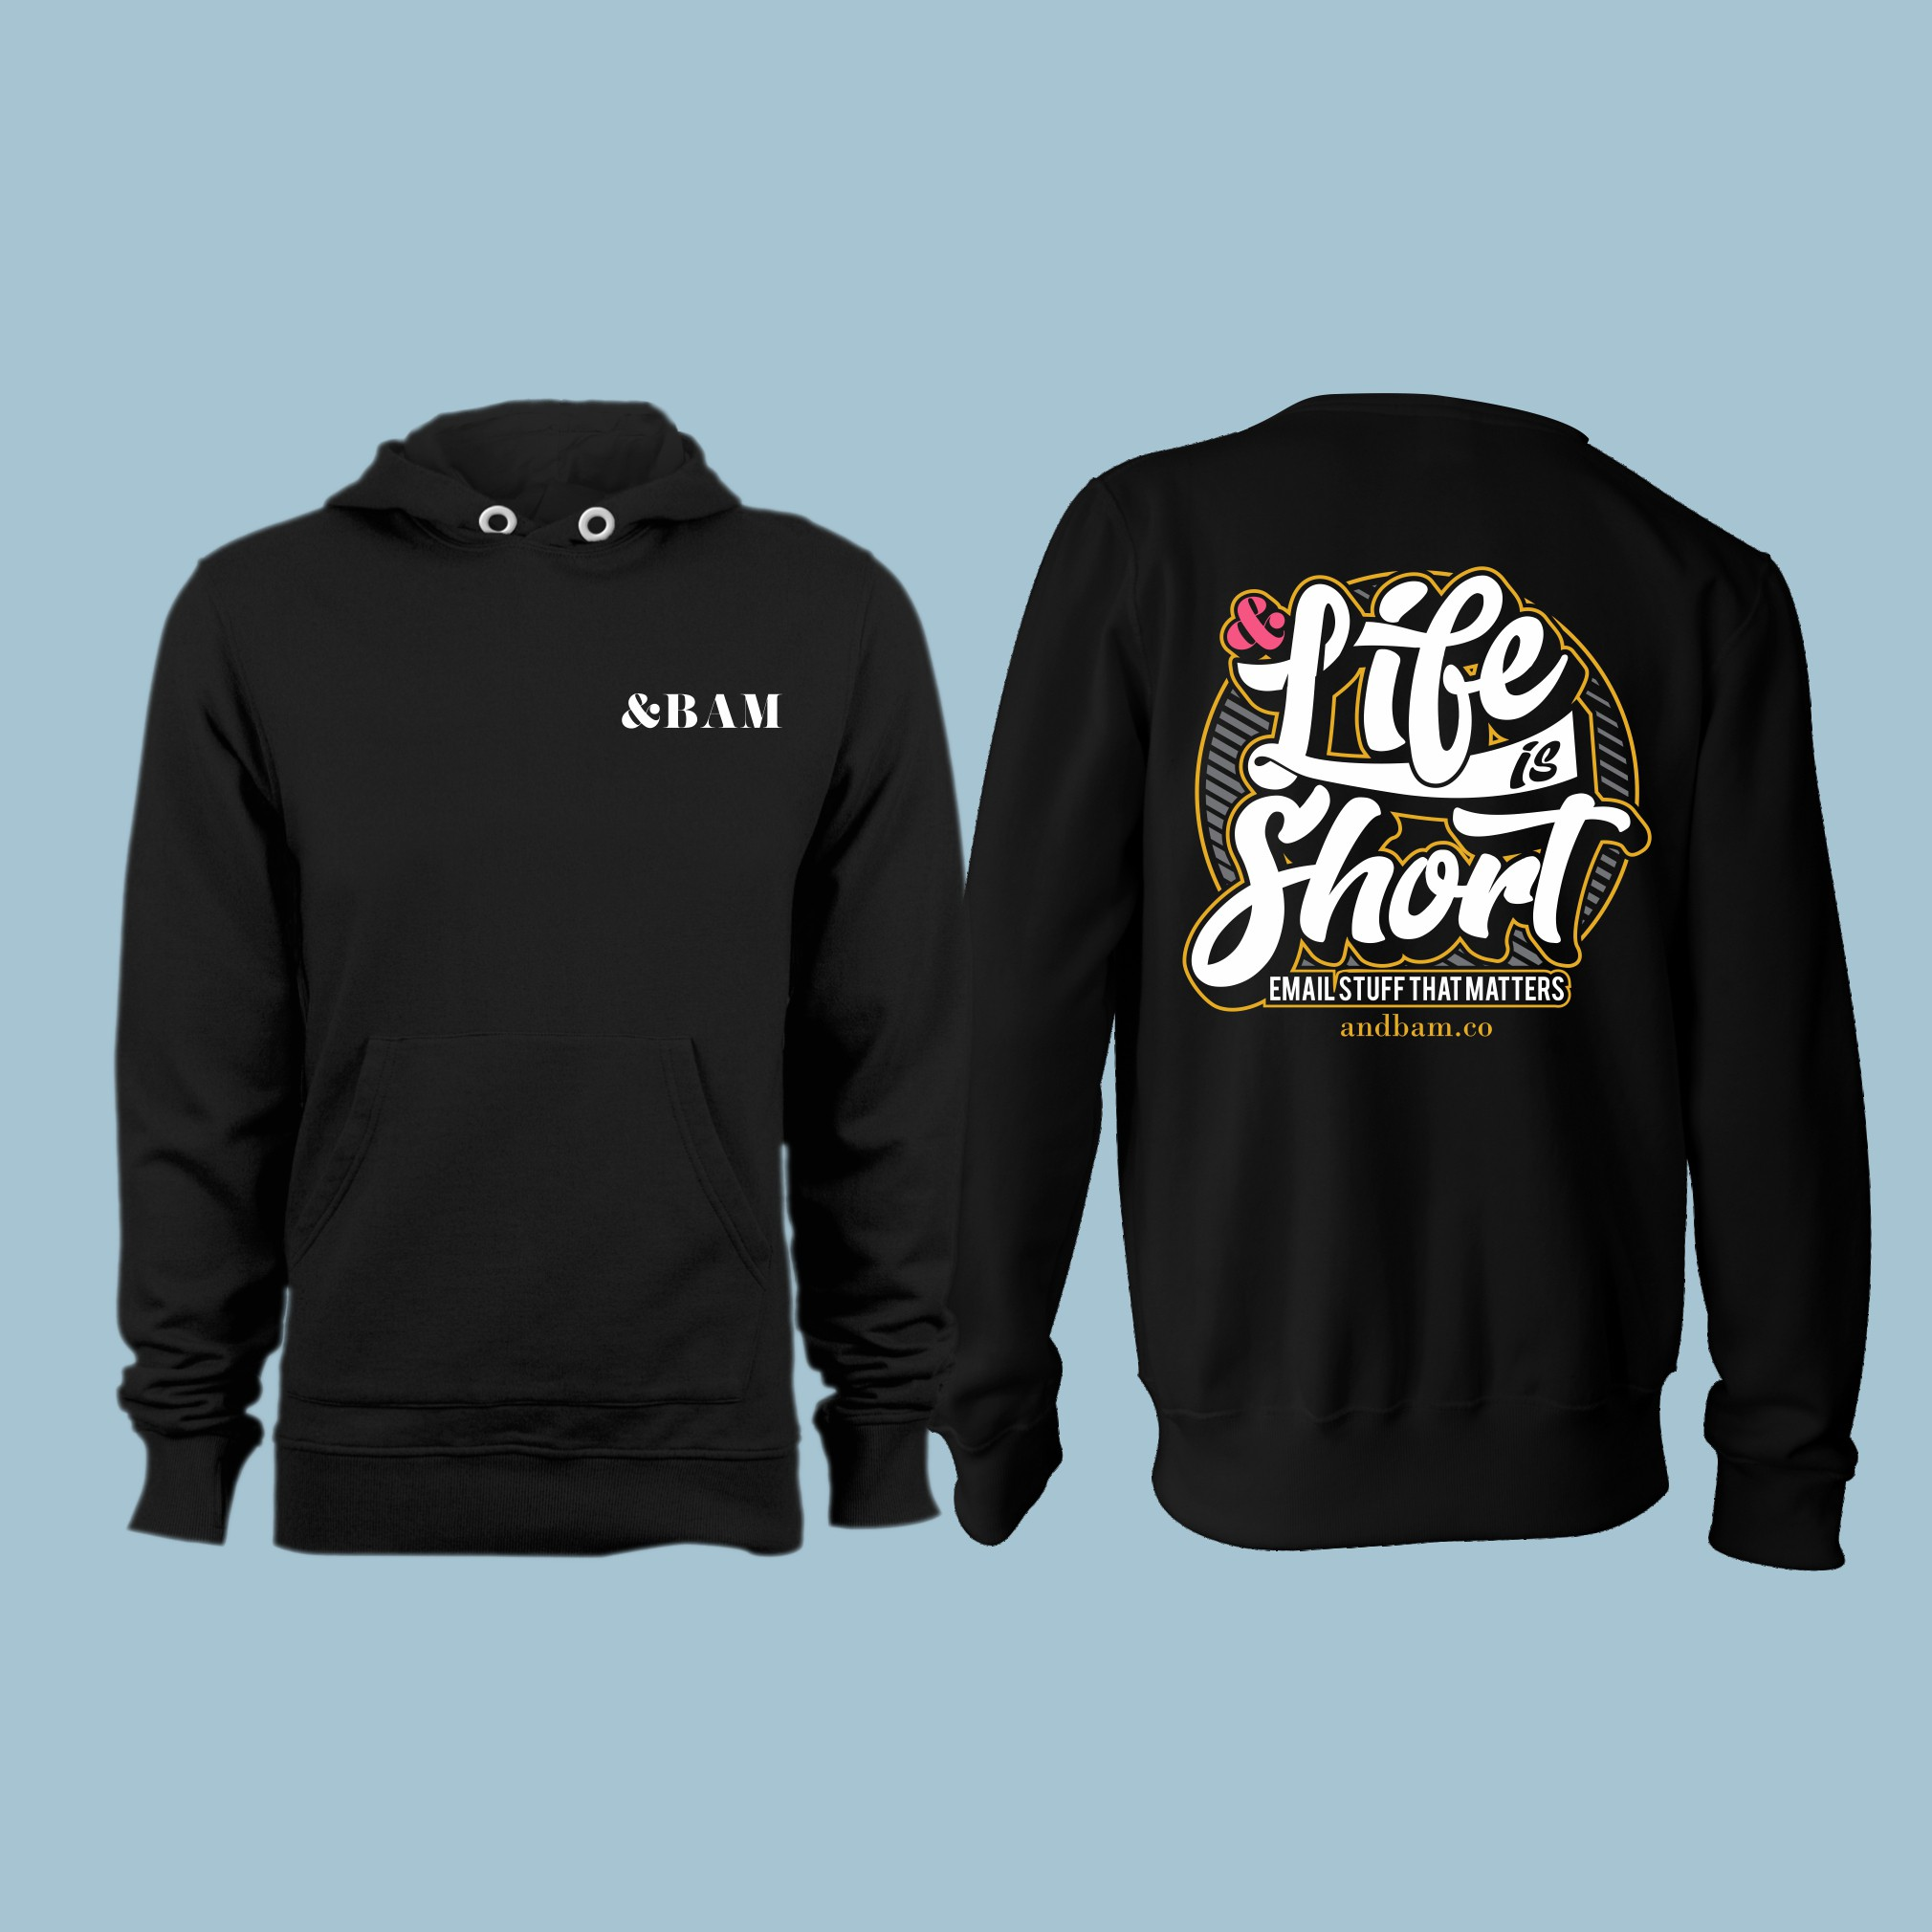 Design an eye-catching team hoodie for an up-and-coming agency